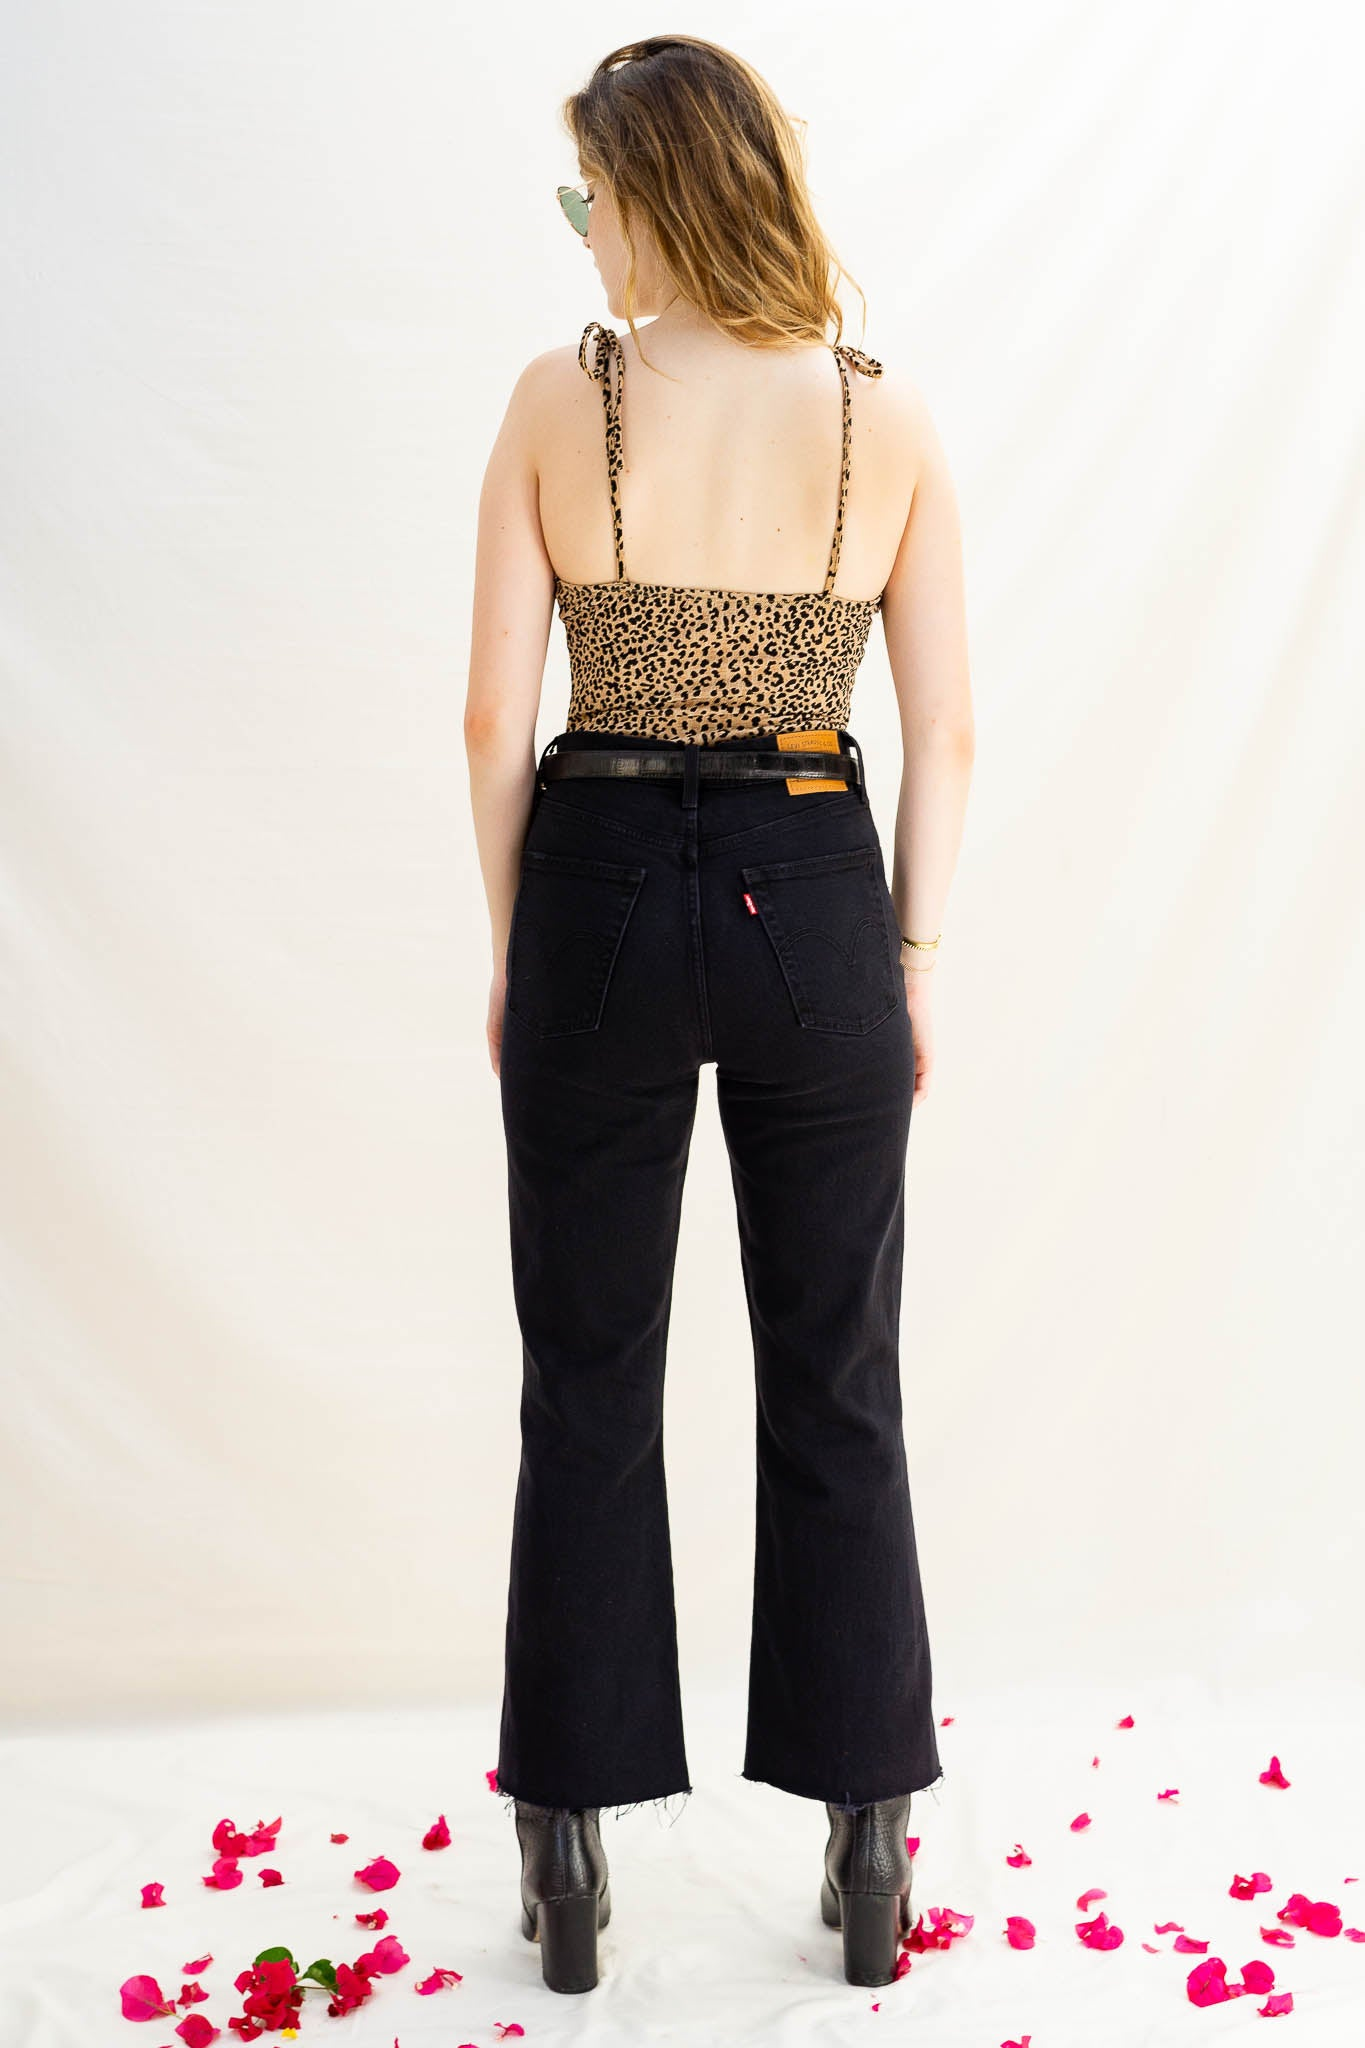 Levi's Ribcage Crop Flare - On The Rocks - The Canyon